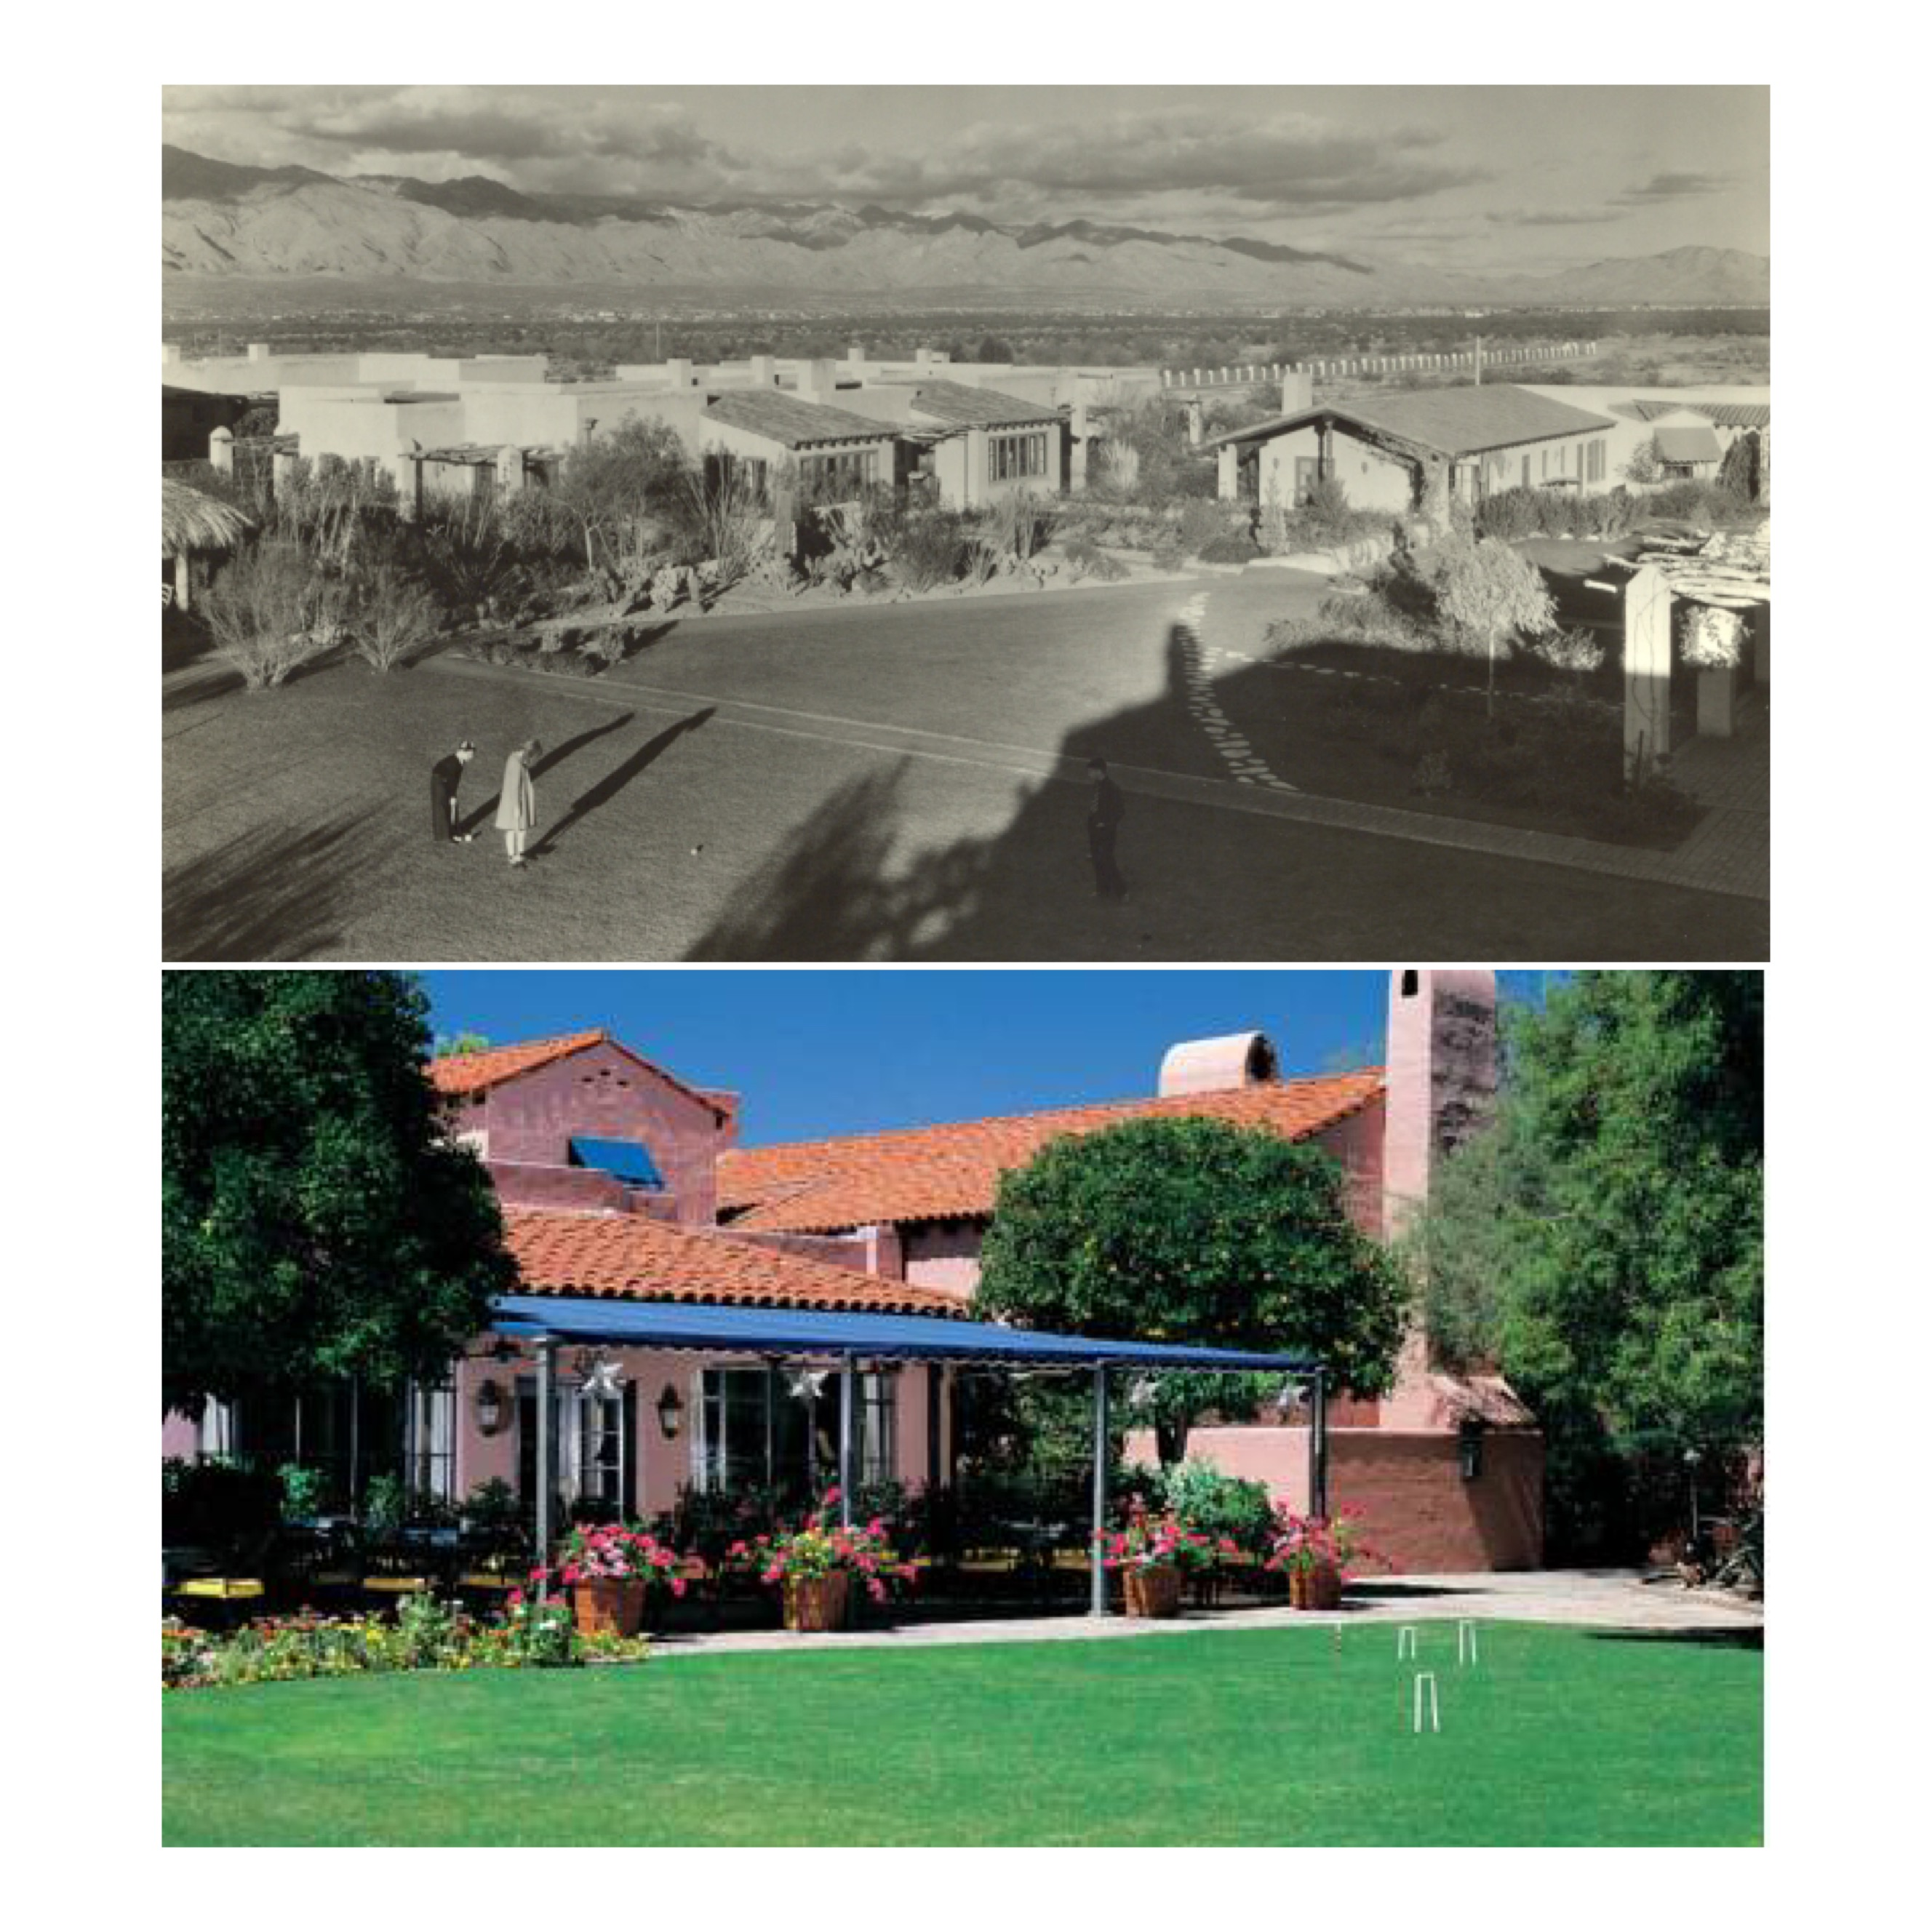 The croquet lawn, then and now.